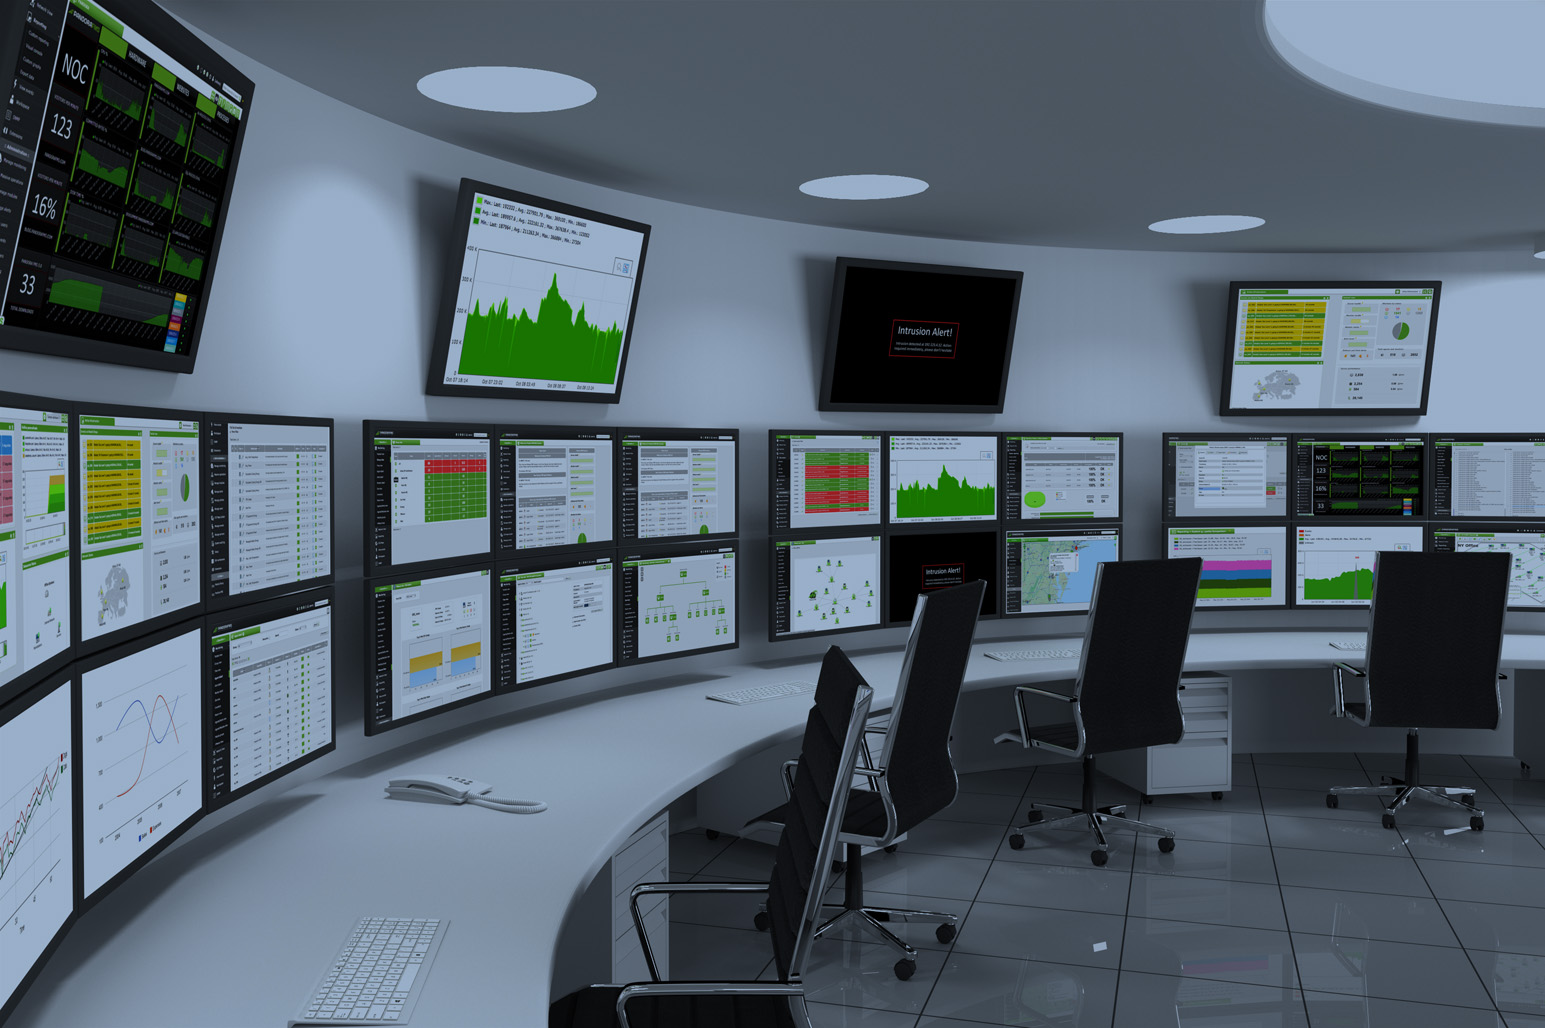 Rendered image of an Industrial Plant Control Room